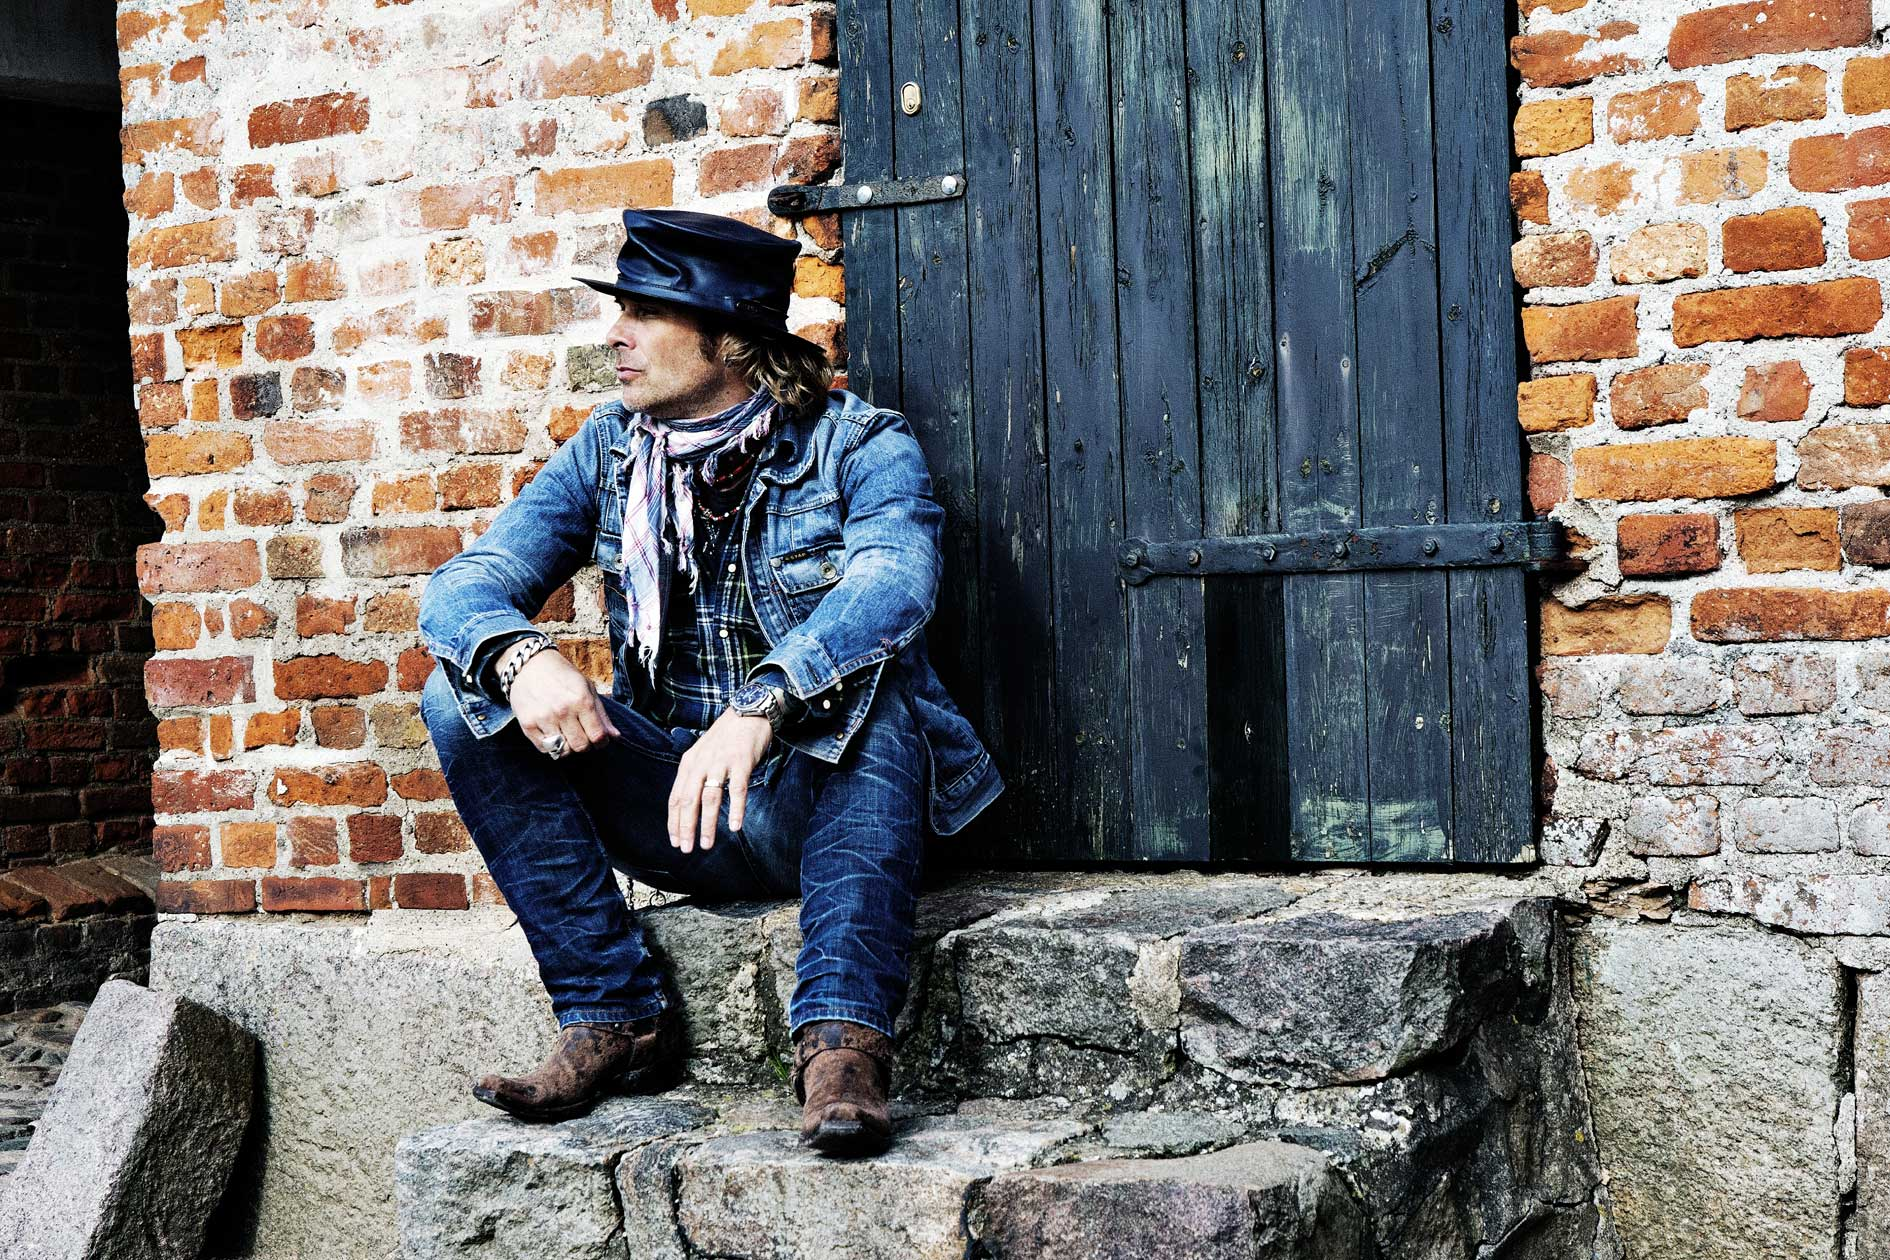 Mike Tramp to release 'Cobblestone Street' on April 8th